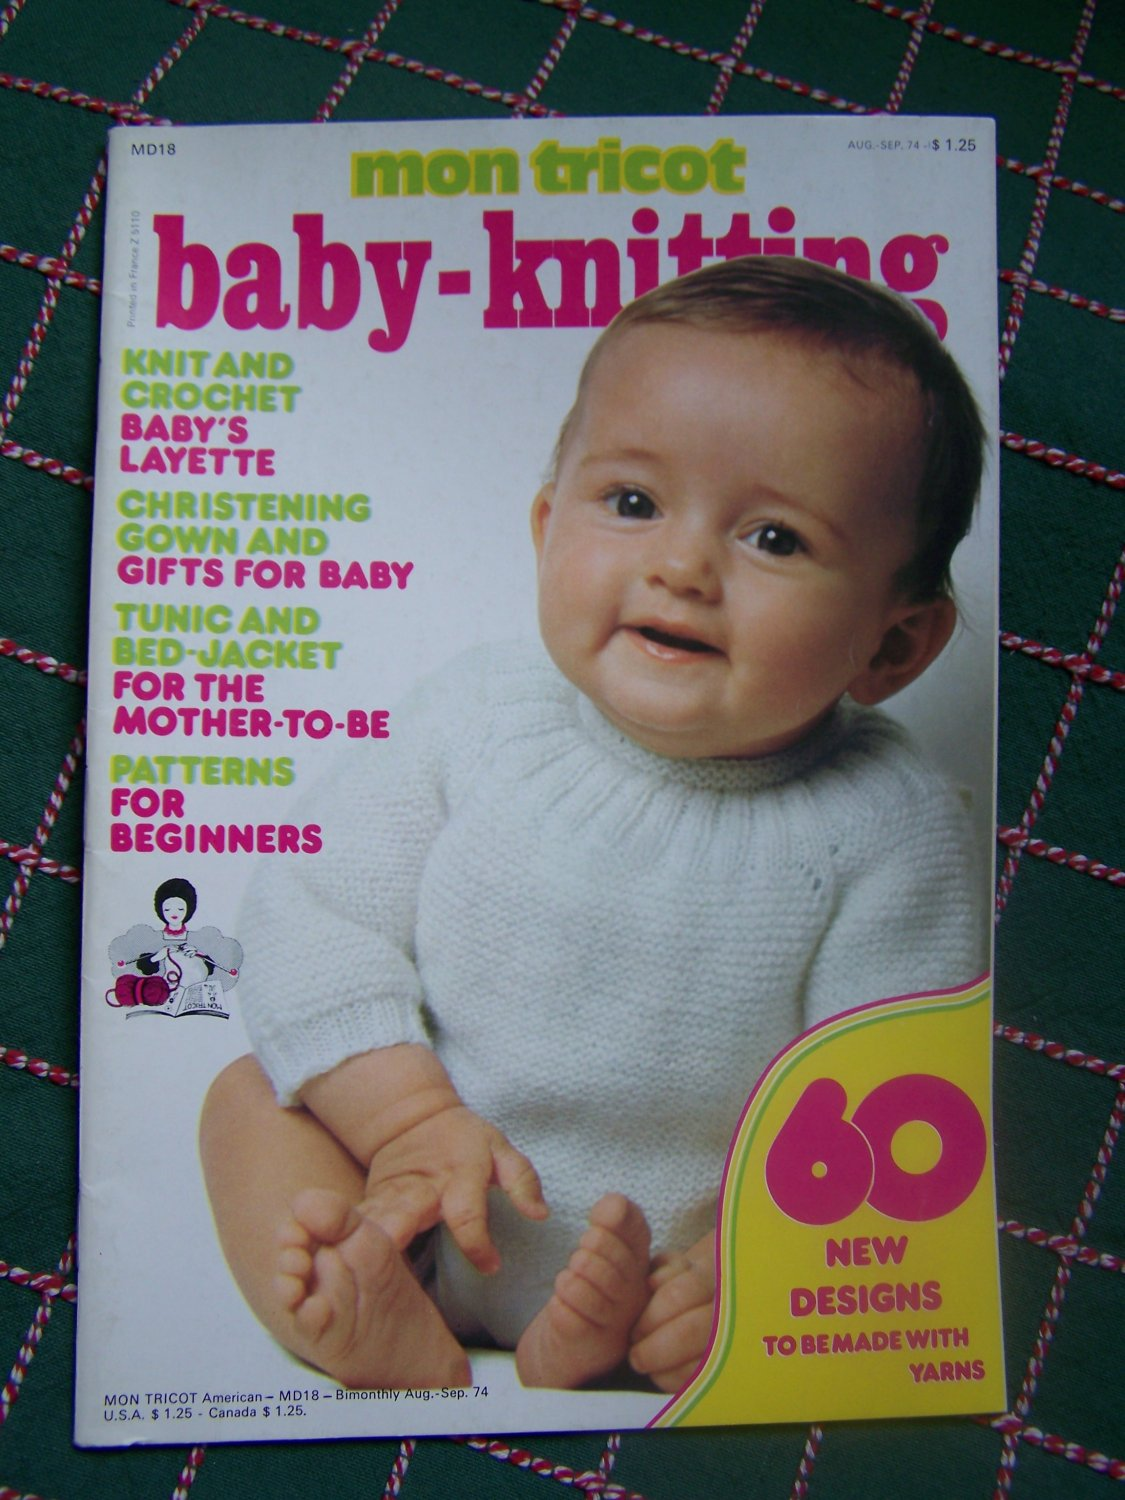 Vintage Aug Sept 1974 Mon Tricot Baby Knitting & Crochet Patterns Book 60 Designs